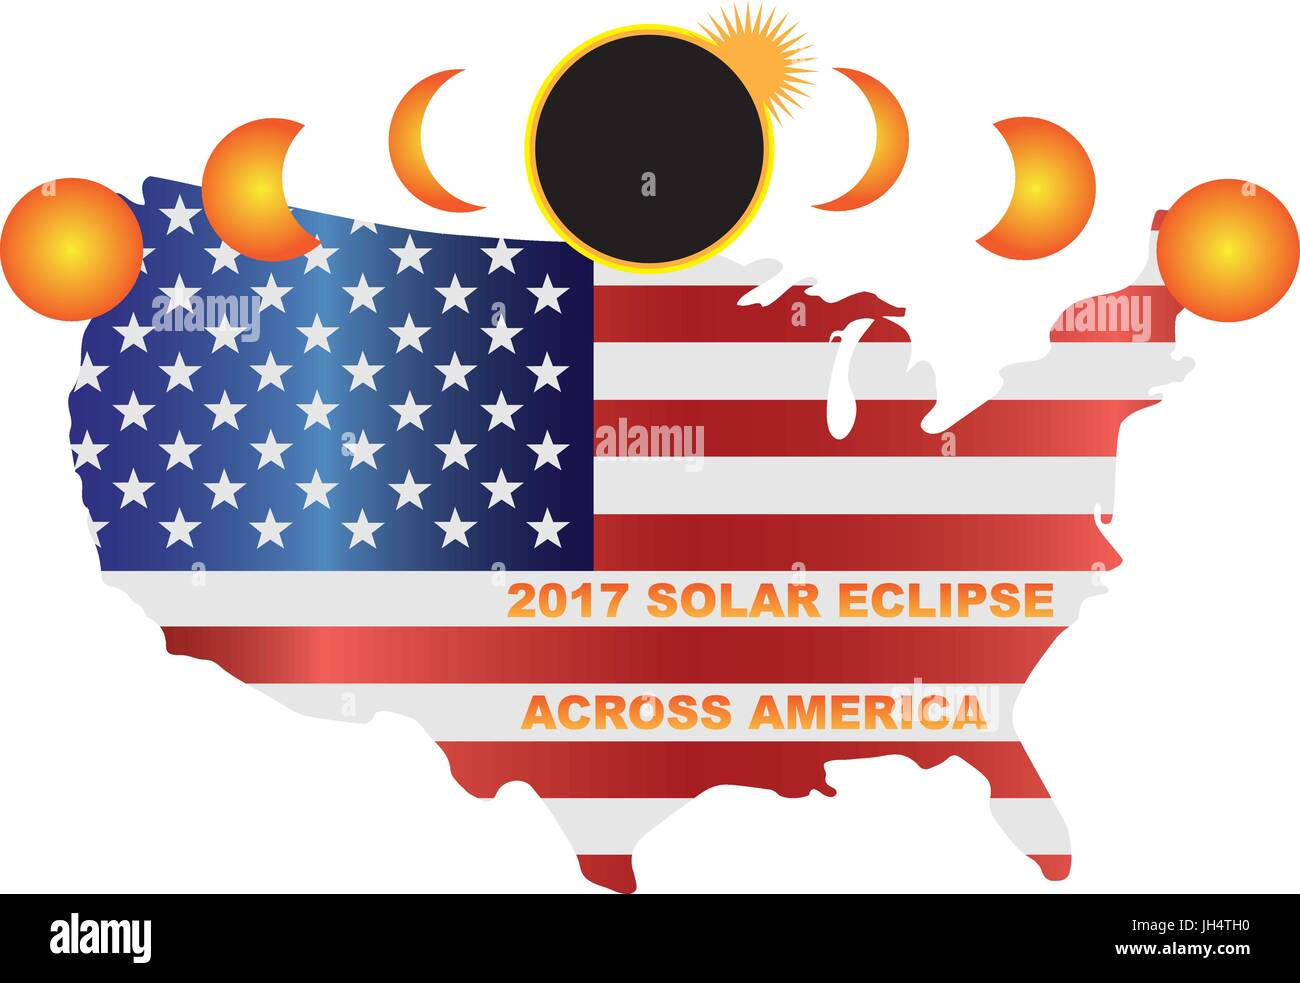 Pictured Ev 2017 Solar Eclipse Totality Across America Usa Map Color Ilration Stock Photo